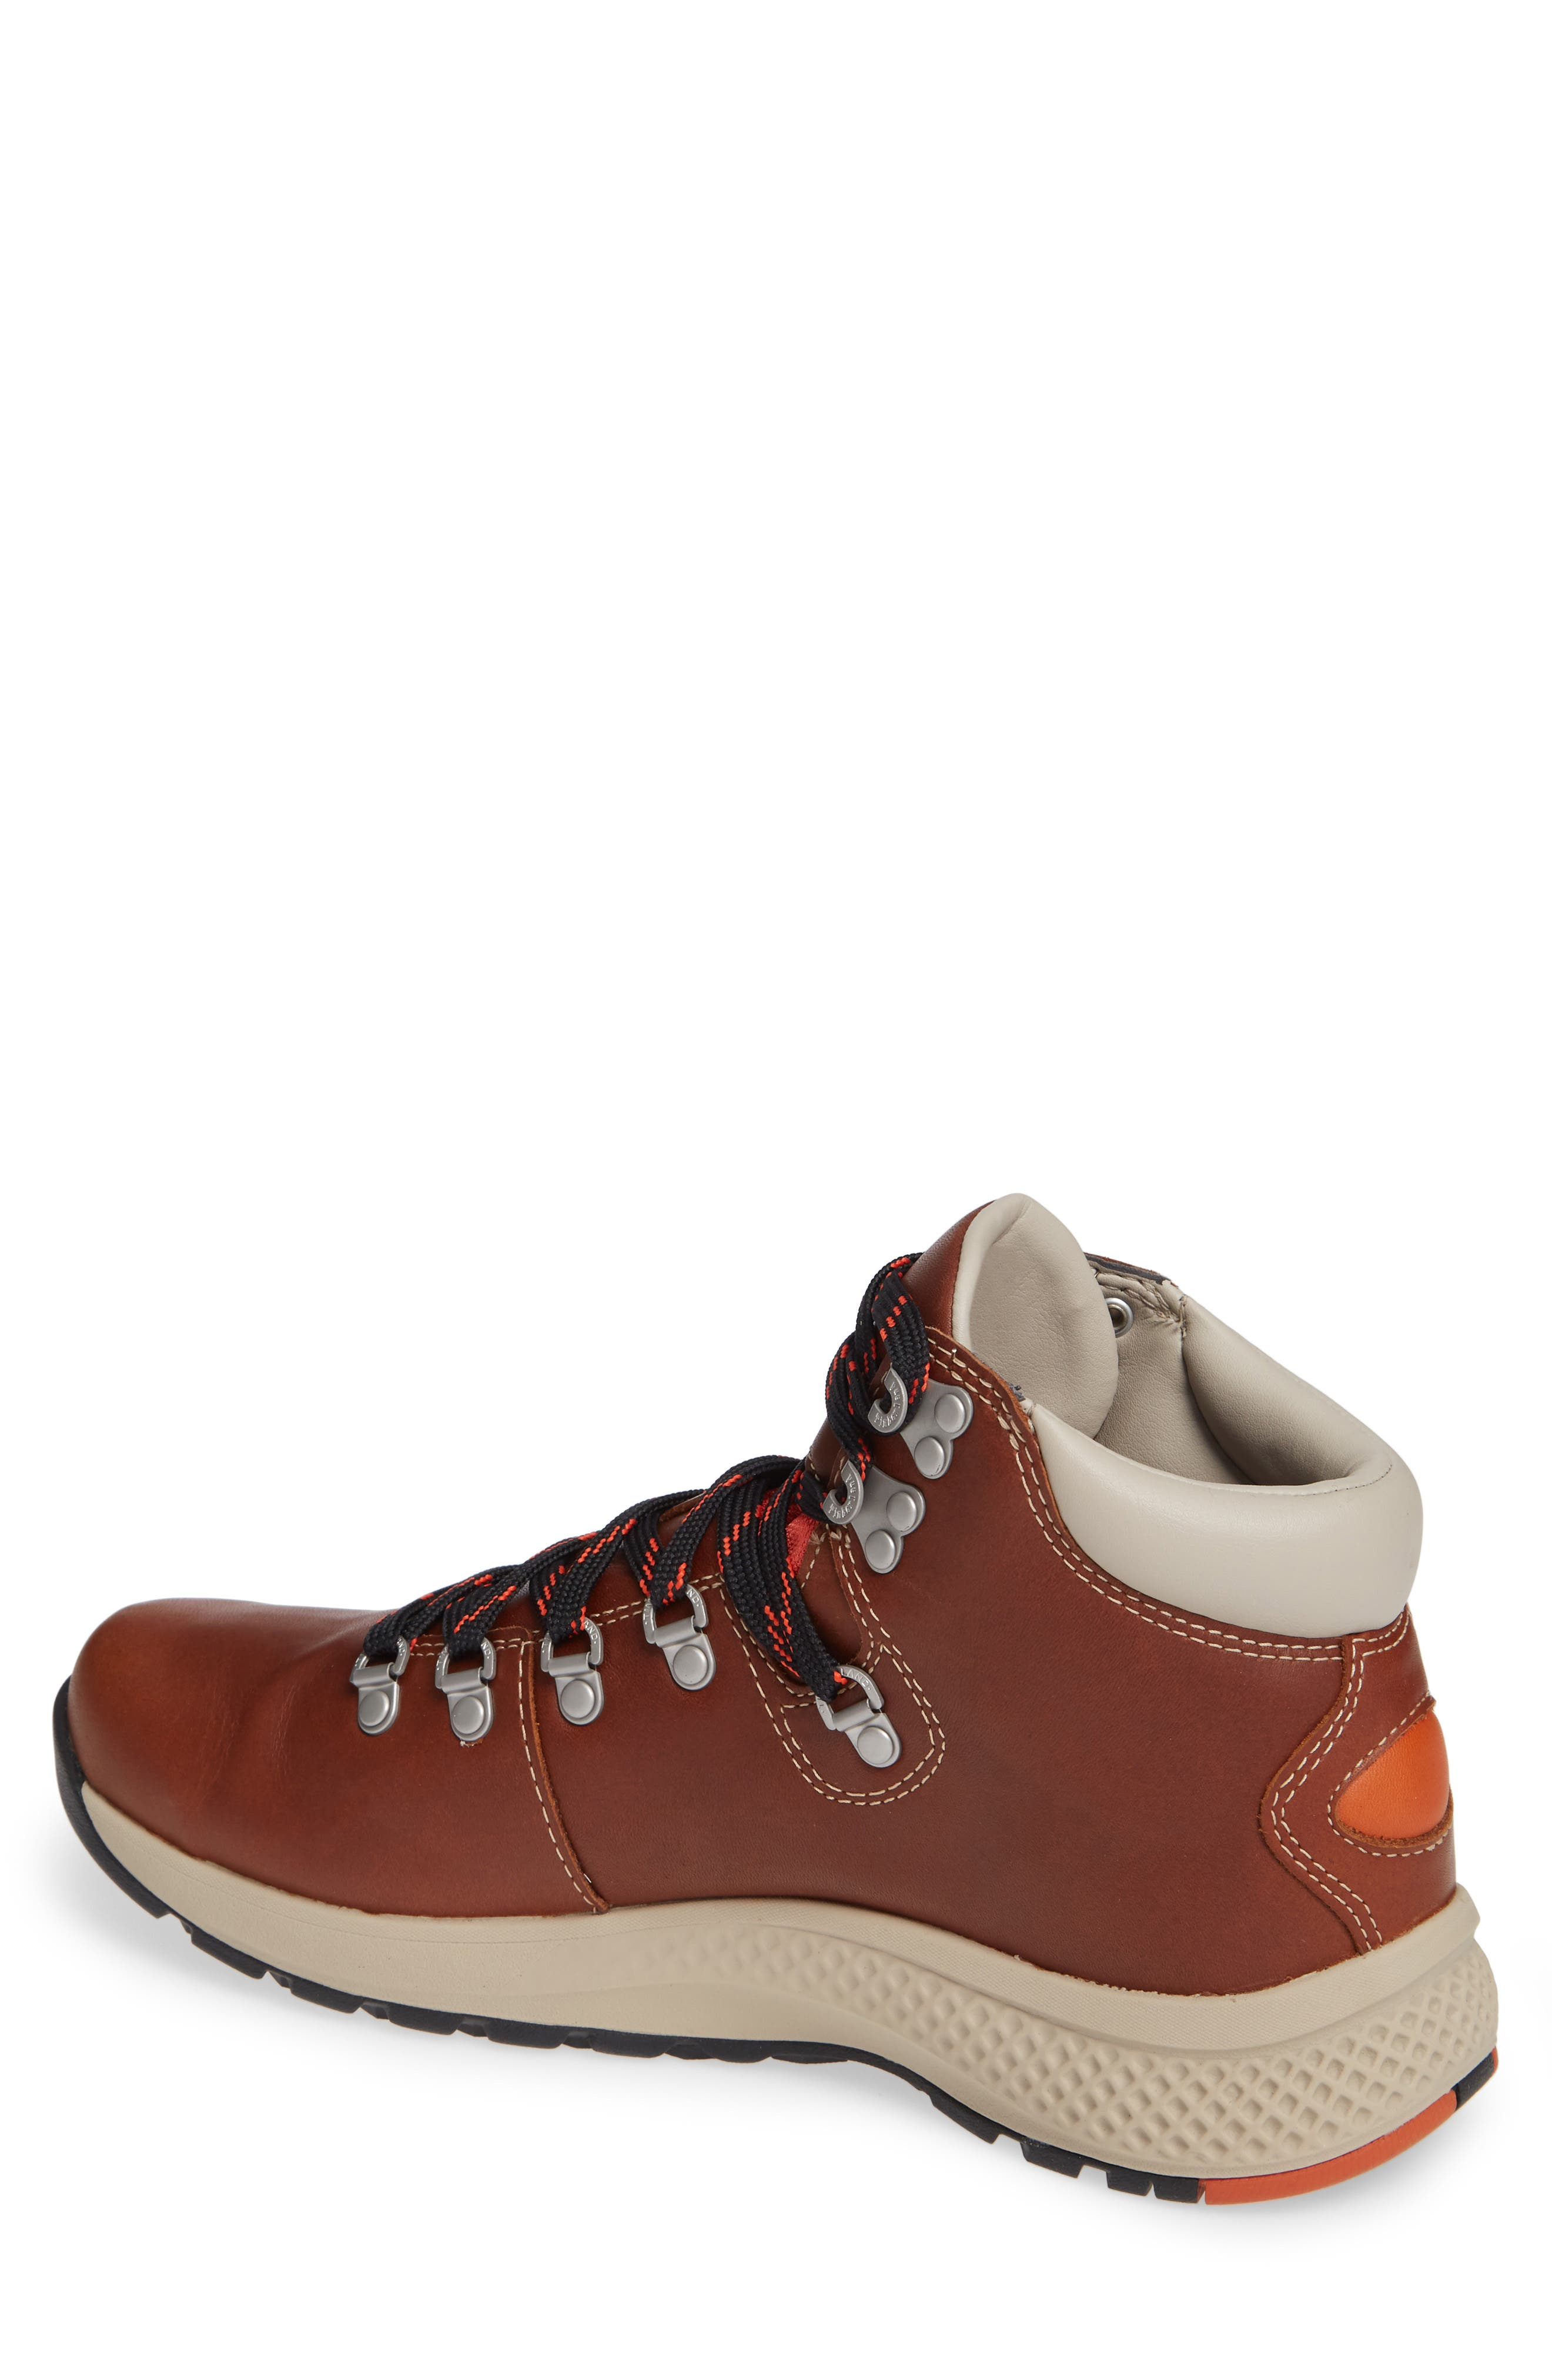 1978 Aerocore Waterproof Hiking Boot,                             Alternate thumbnail 2, color,                             BROWN LEATHER